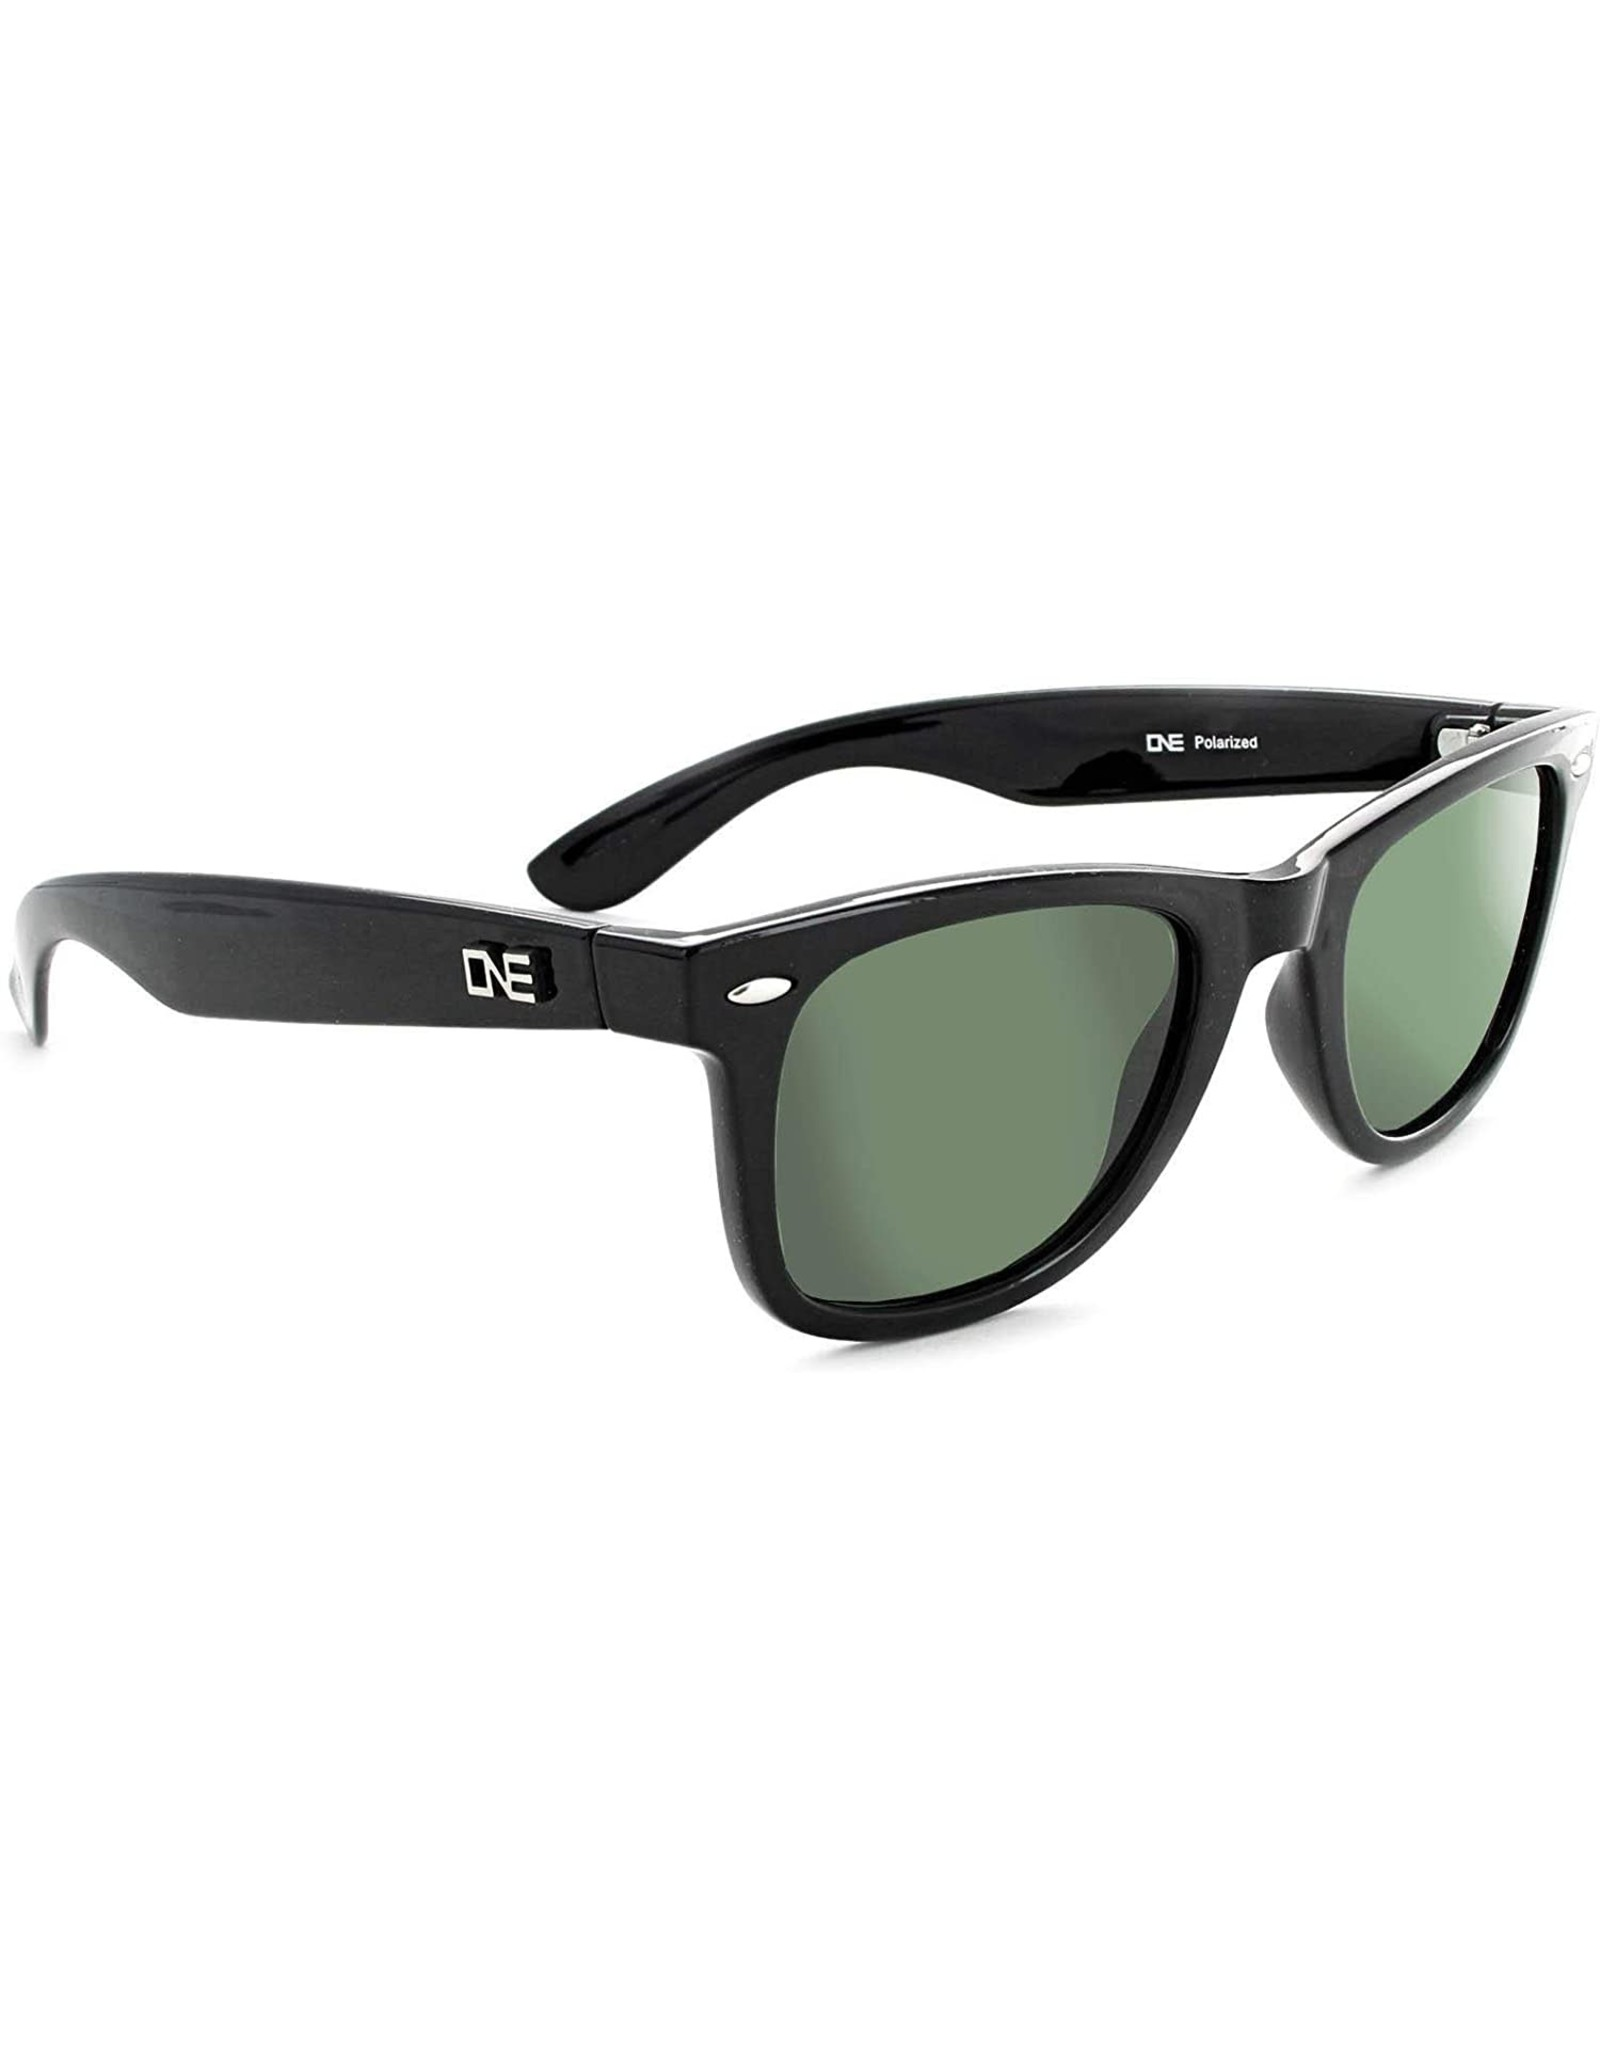 Optic Nerve ONE Dylan Polarized Sunglasses: Shiny Black with Polarized Gray Lens